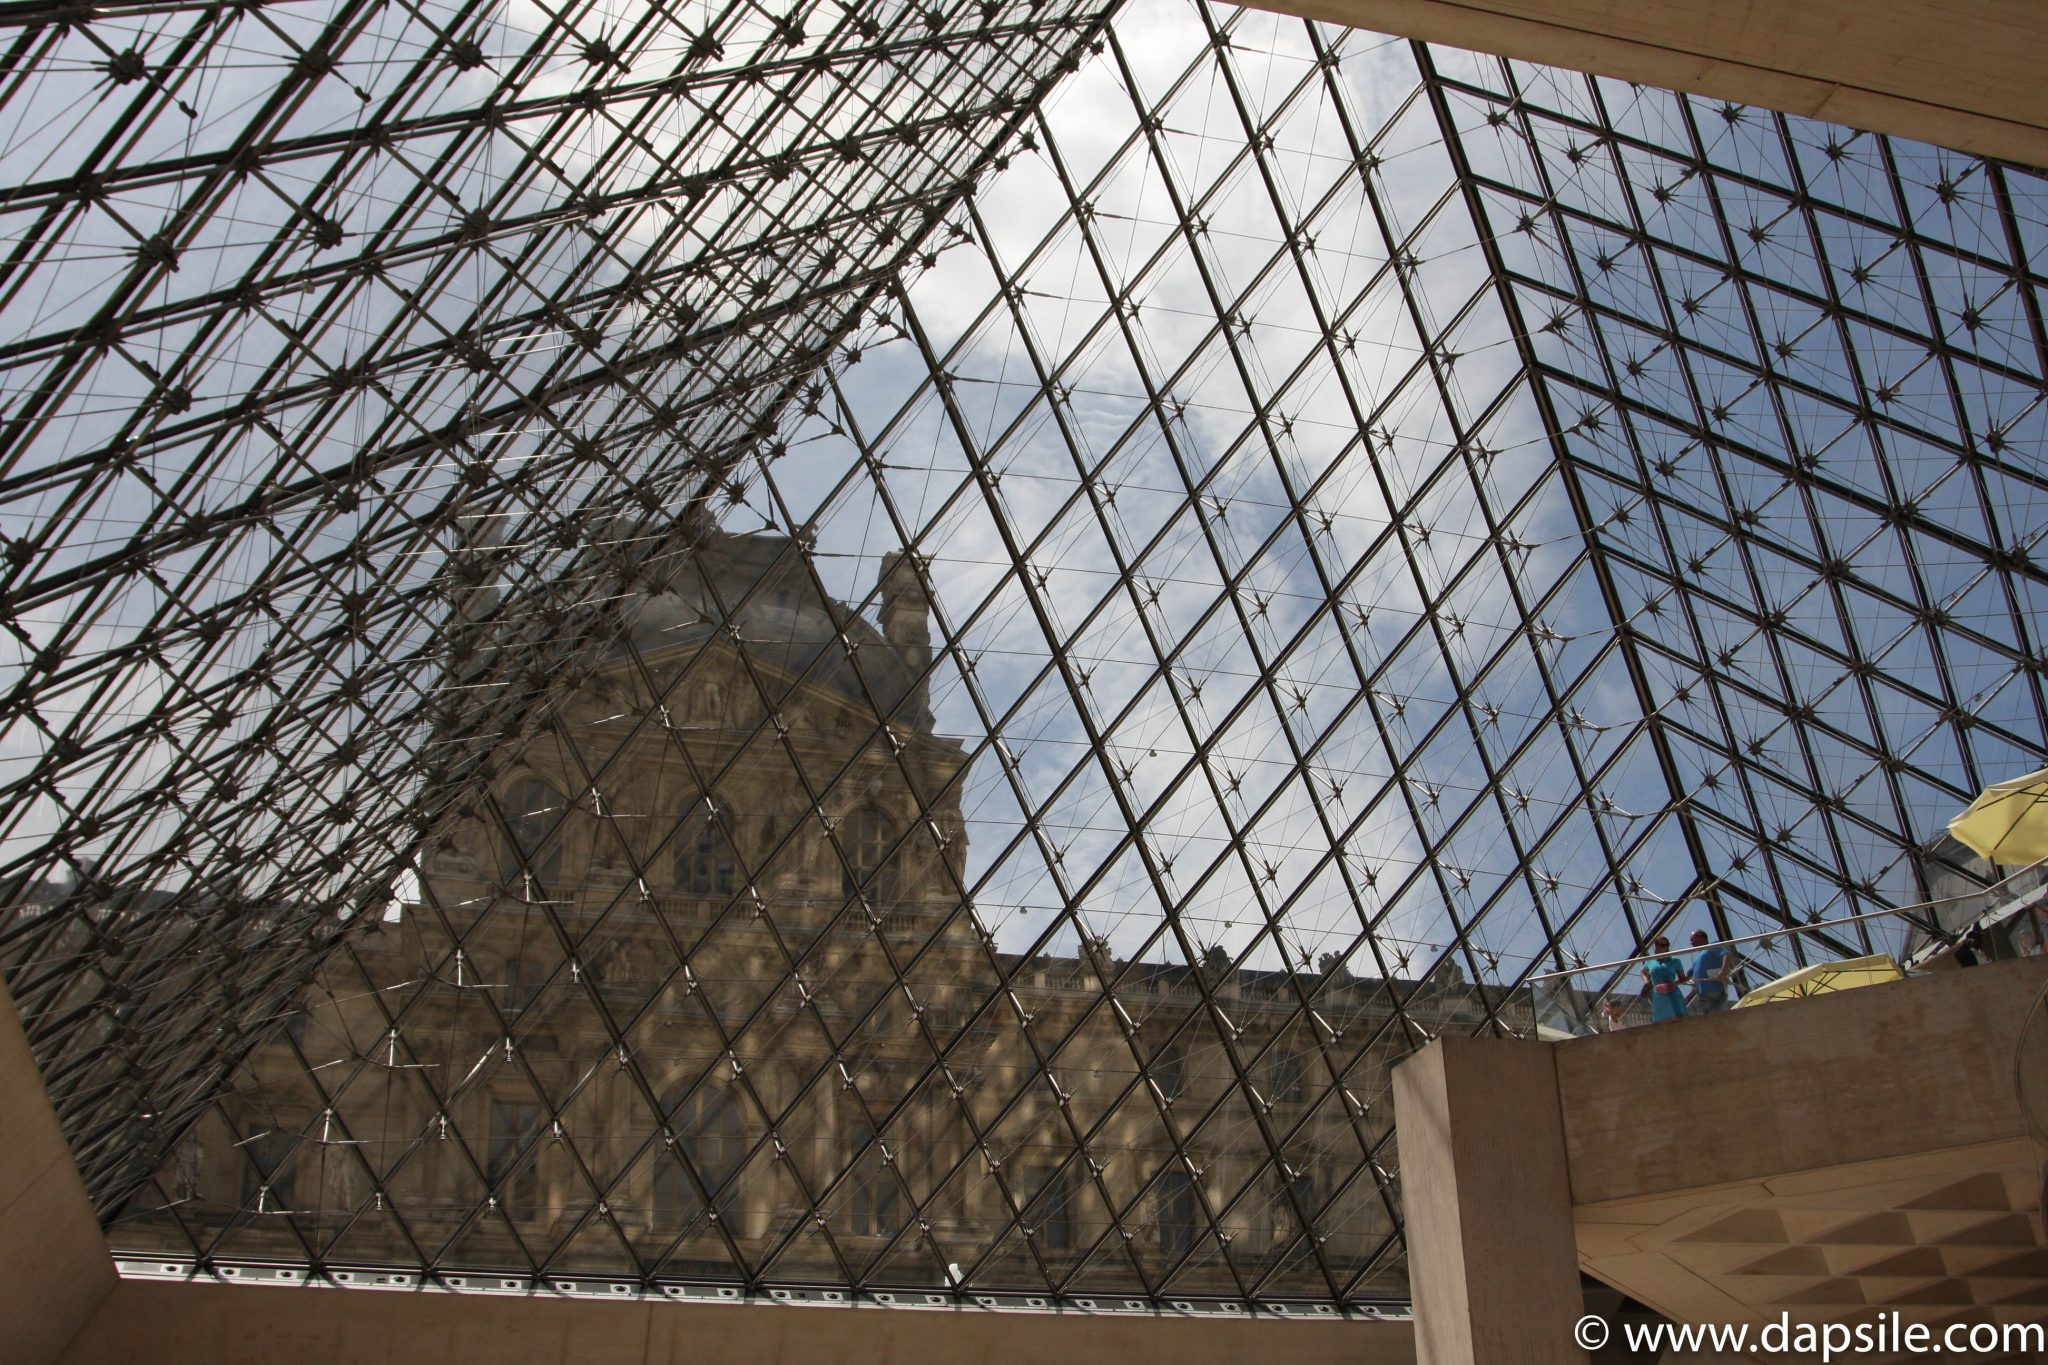 Looking Out Through the Glass Pyramid at the Louvre in Paris